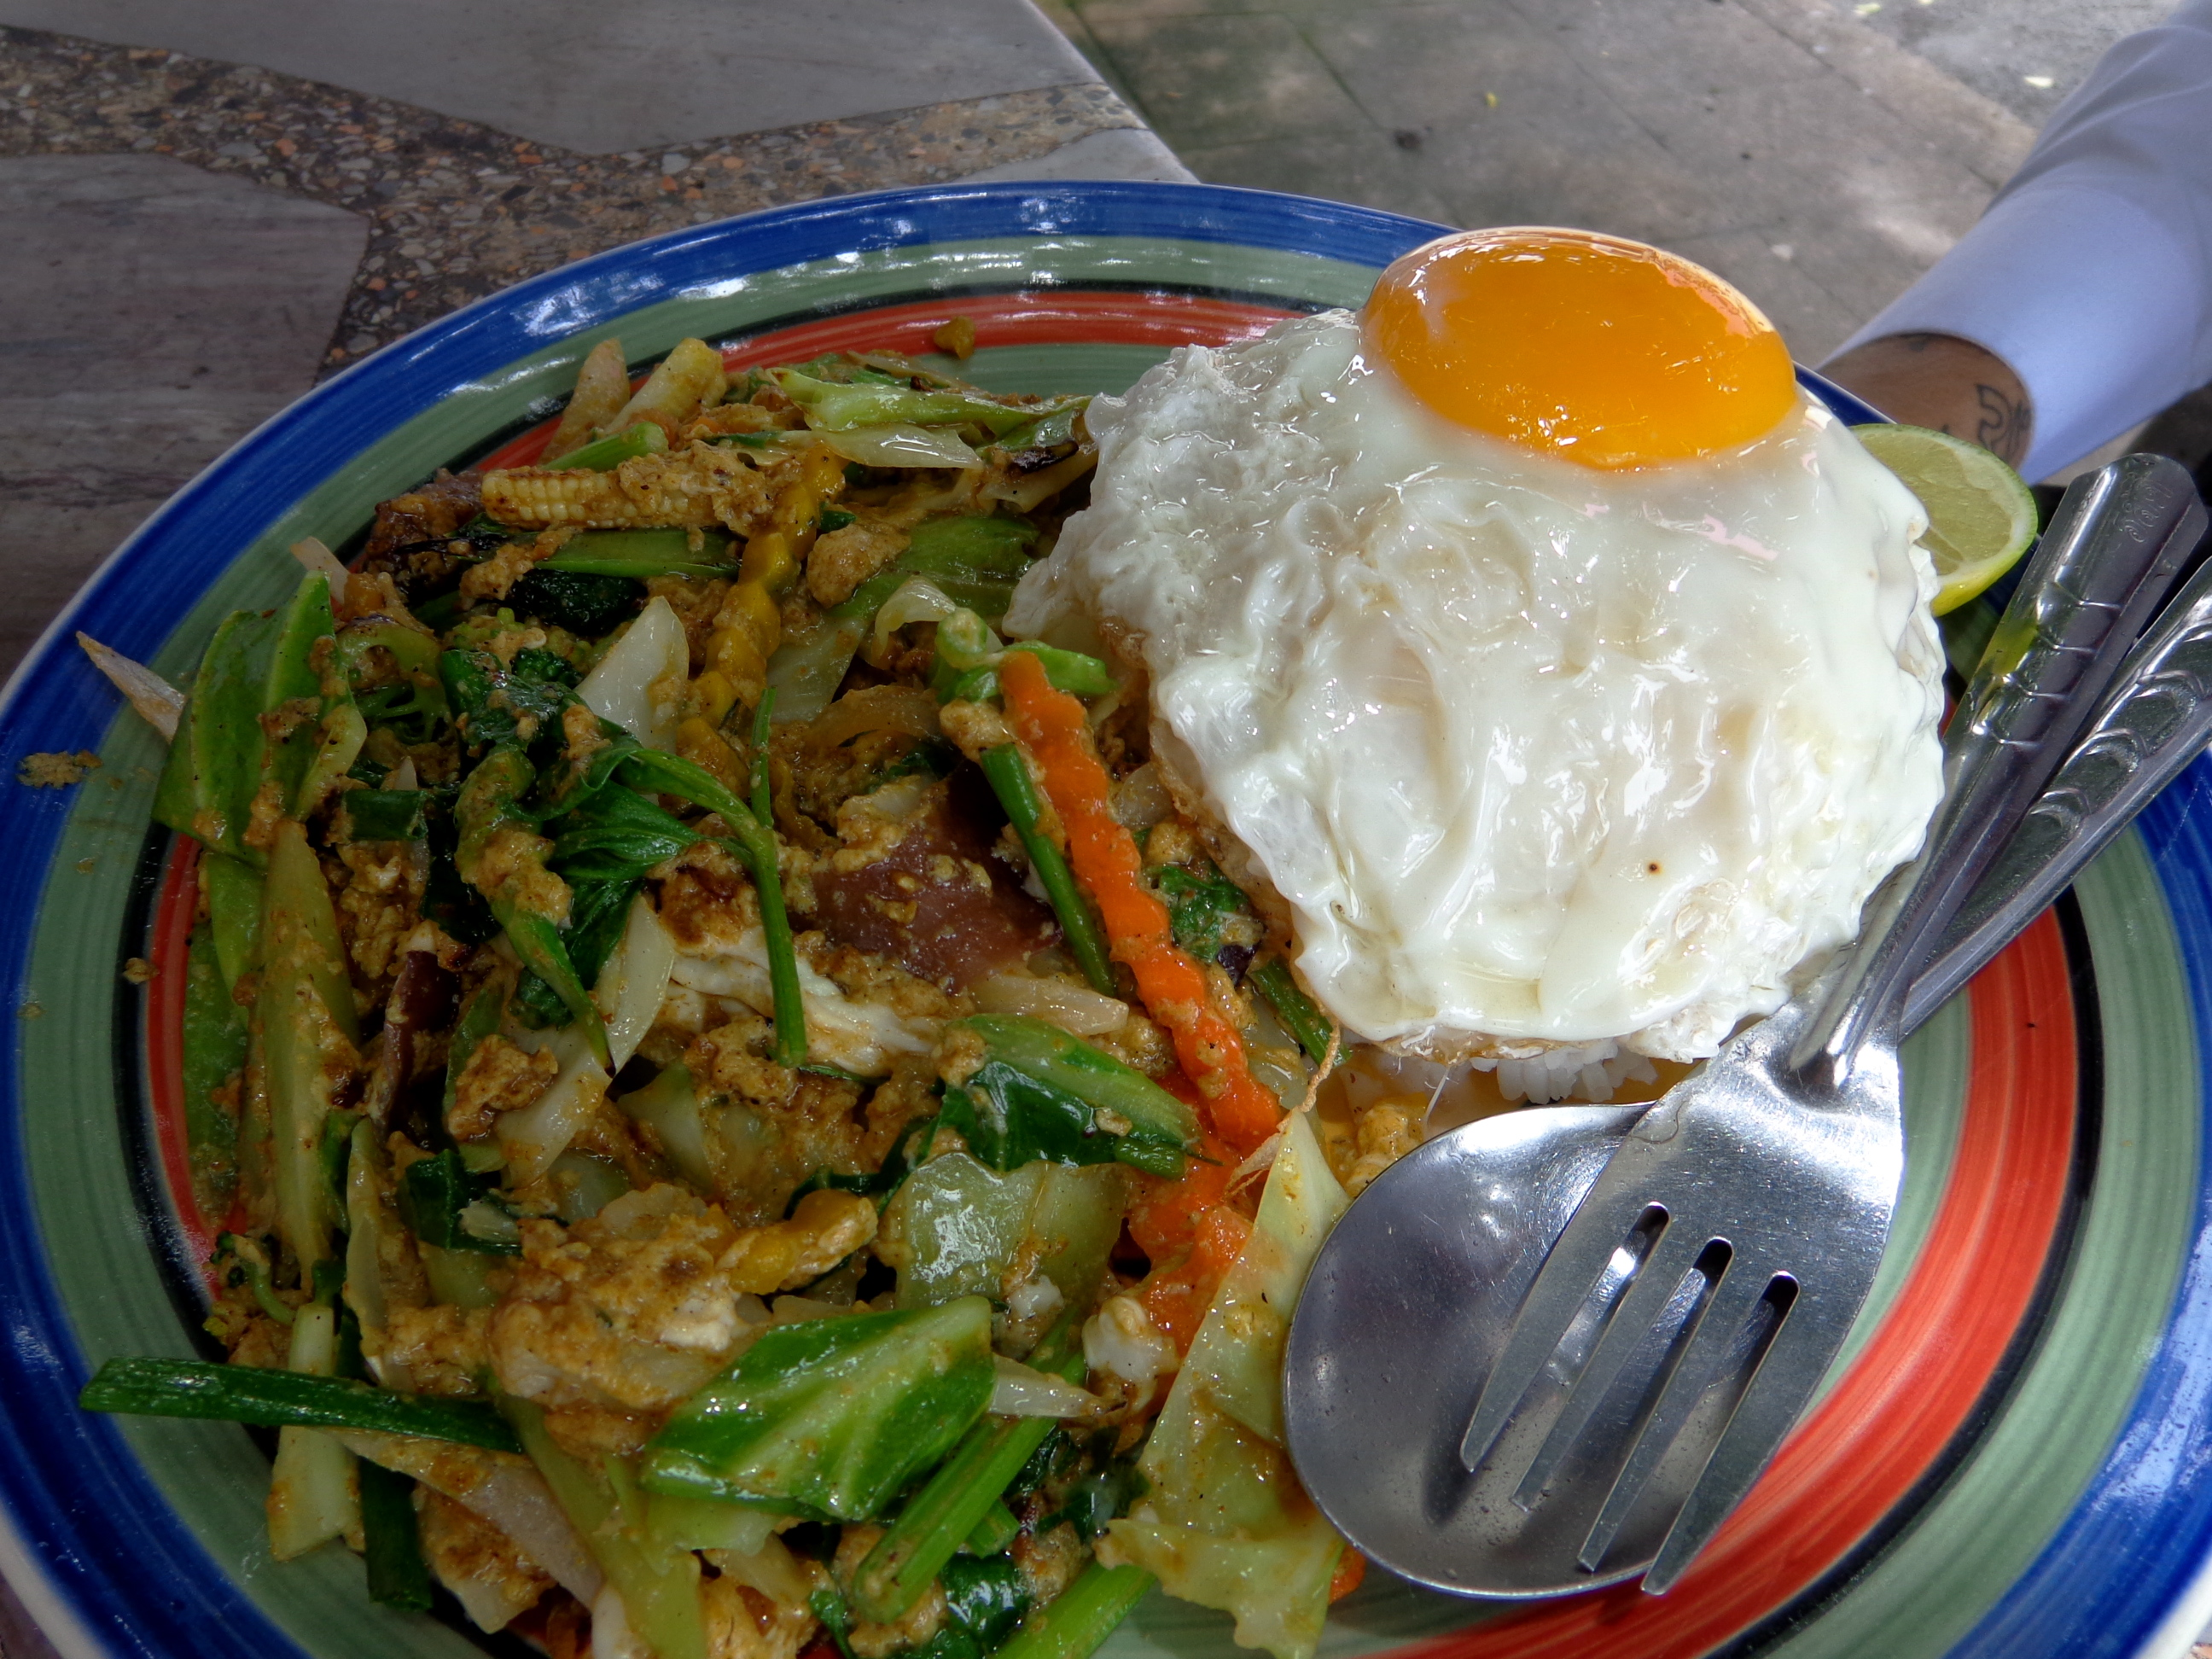 pad pangaree jay (yellow curry vegetables) food in Thailand